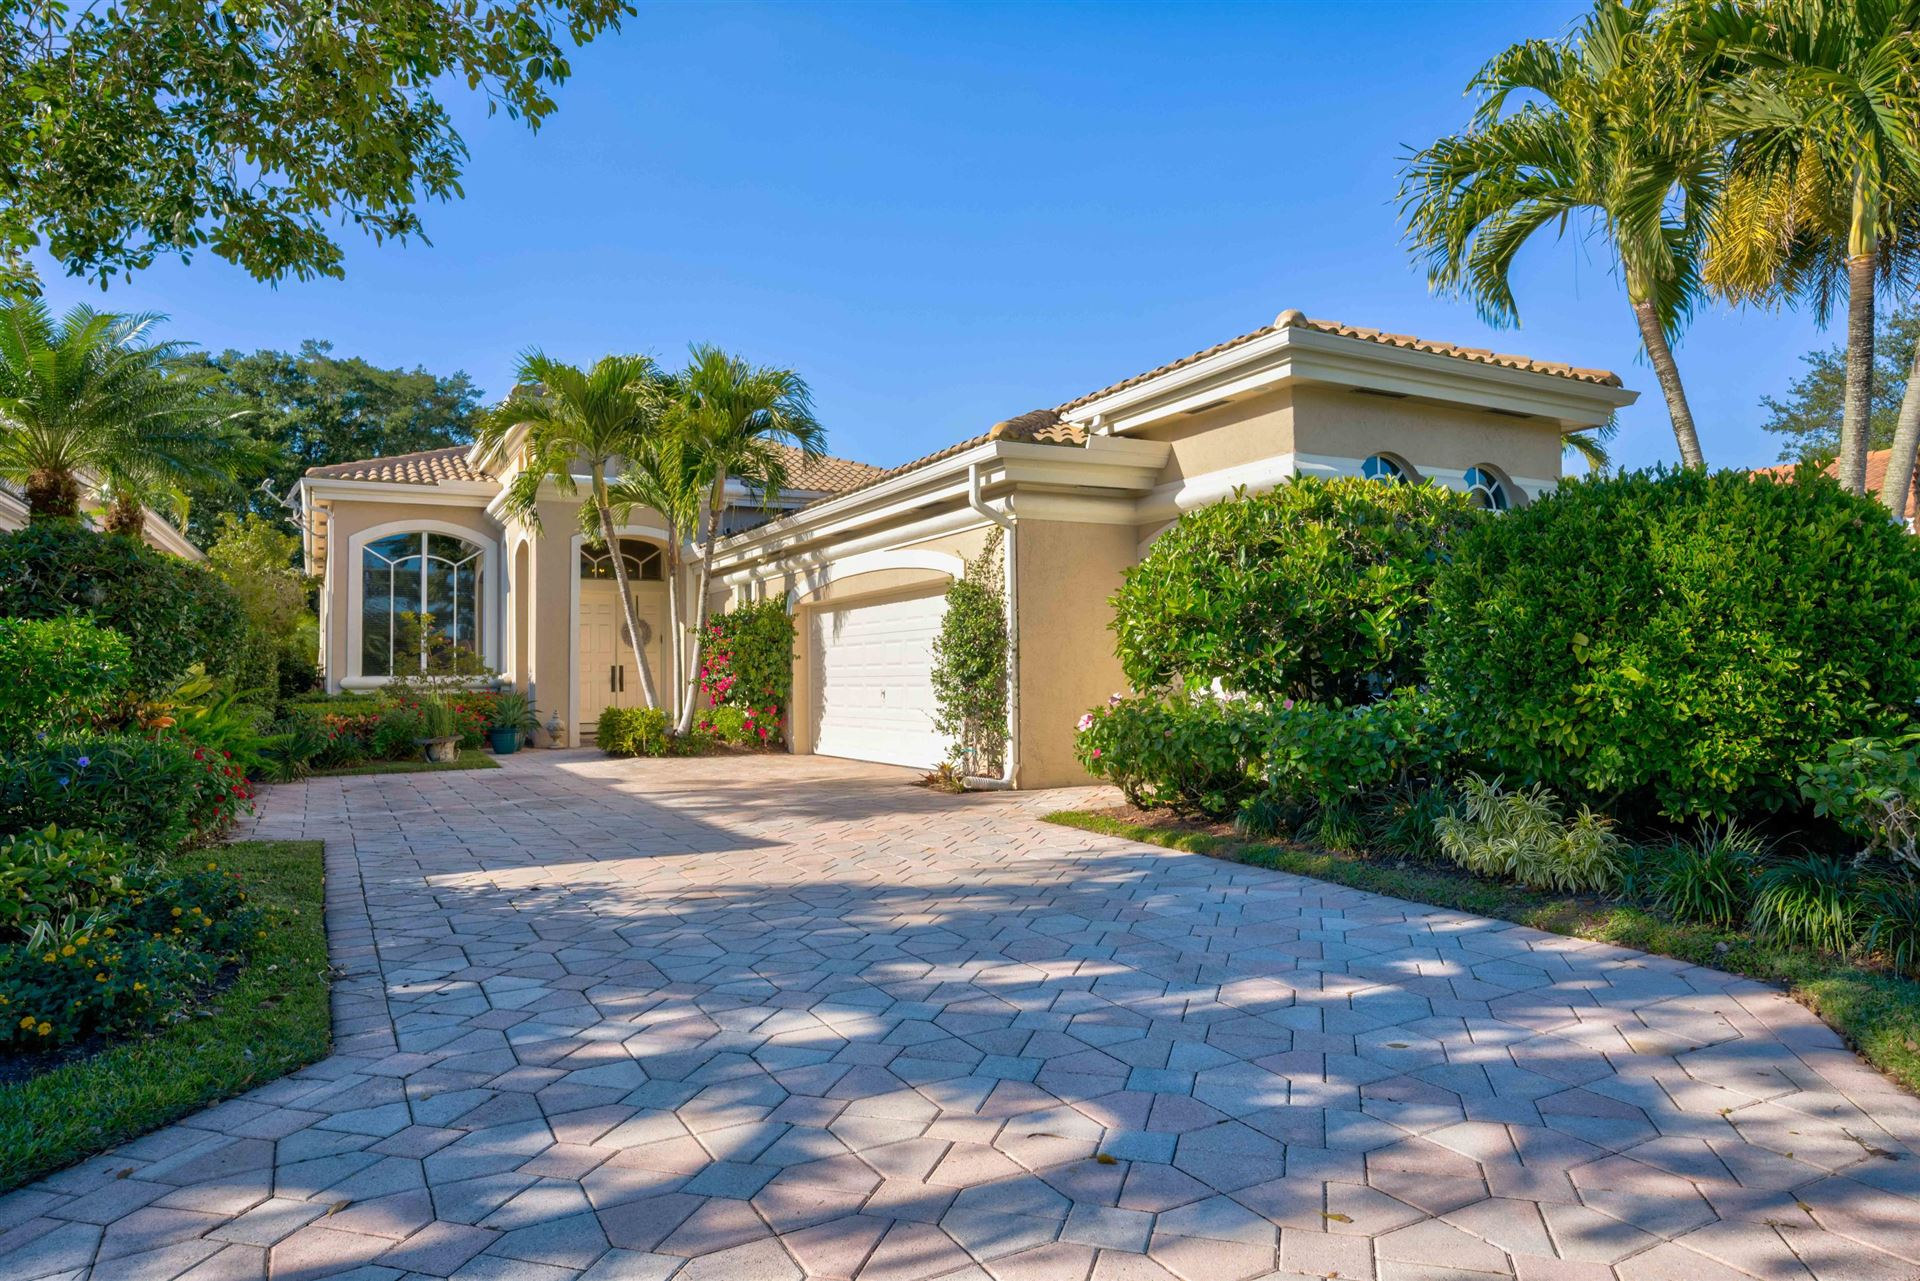 Photo of 283 Isle Way, Palm Beach Gardens, FL 33418 (MLS # RX-10685256)